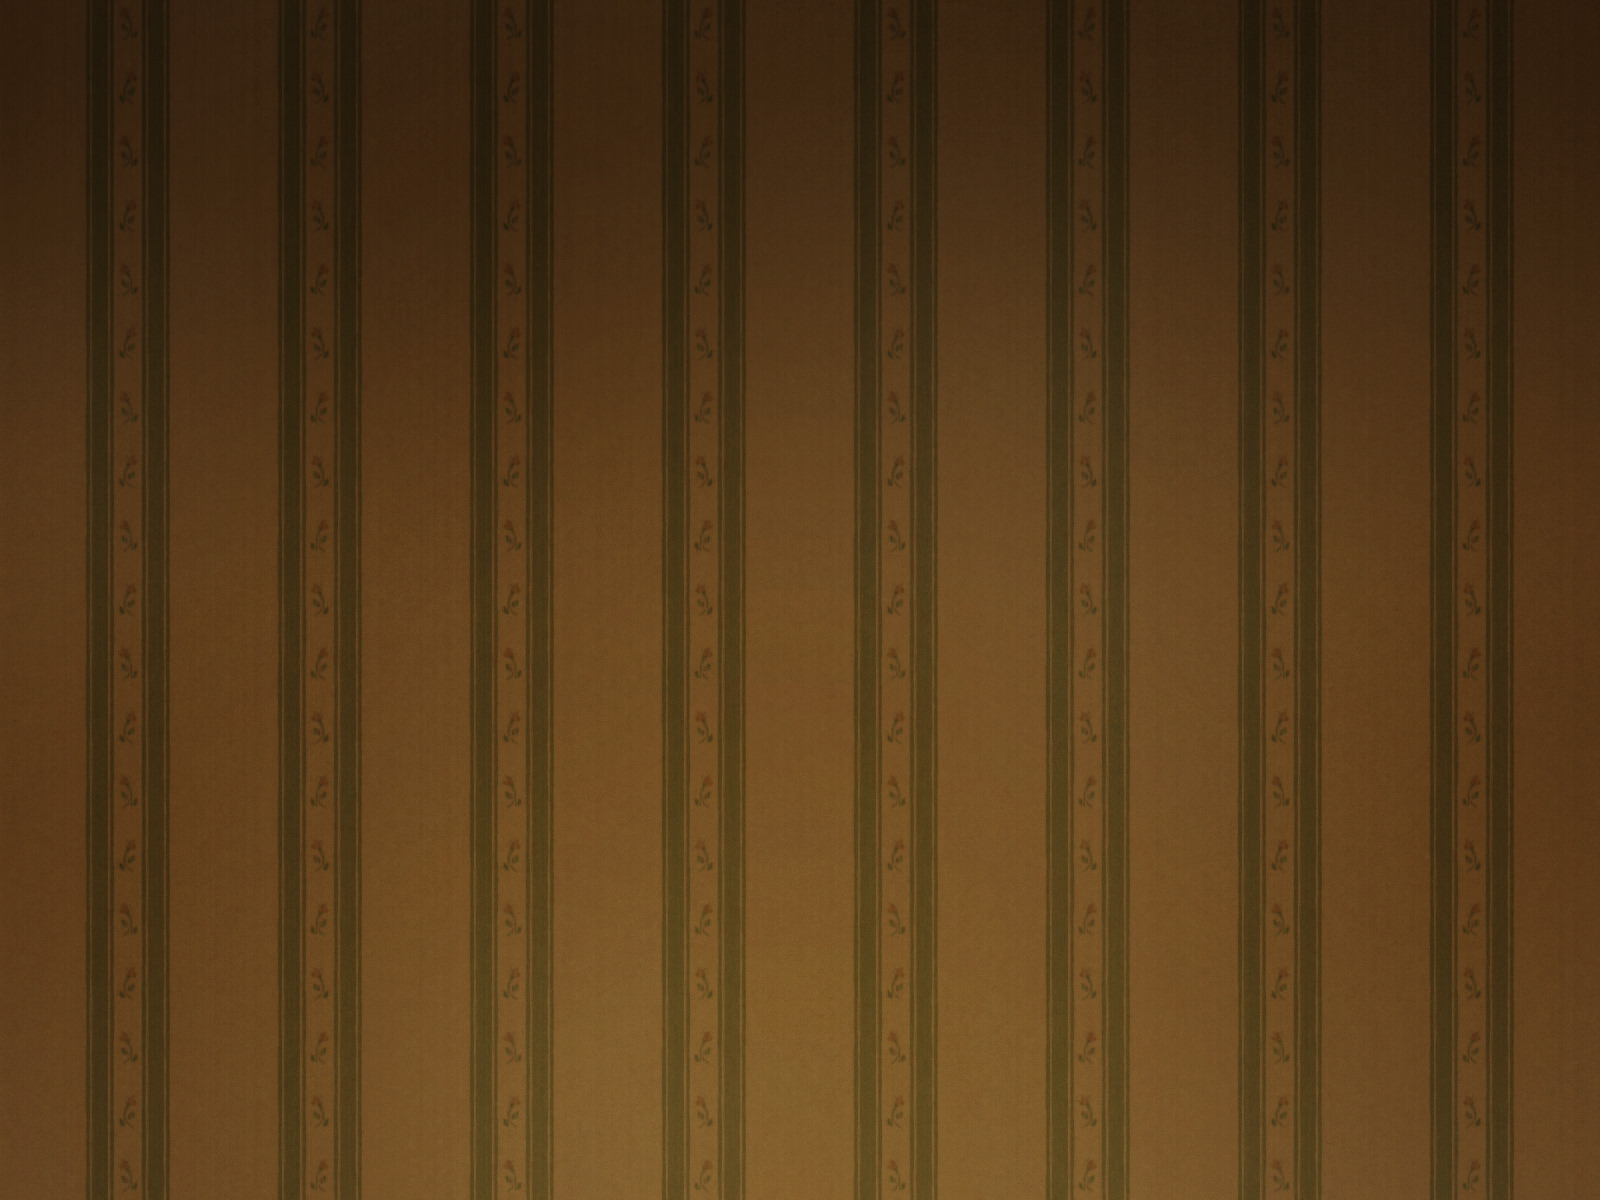 abstract lined brown background